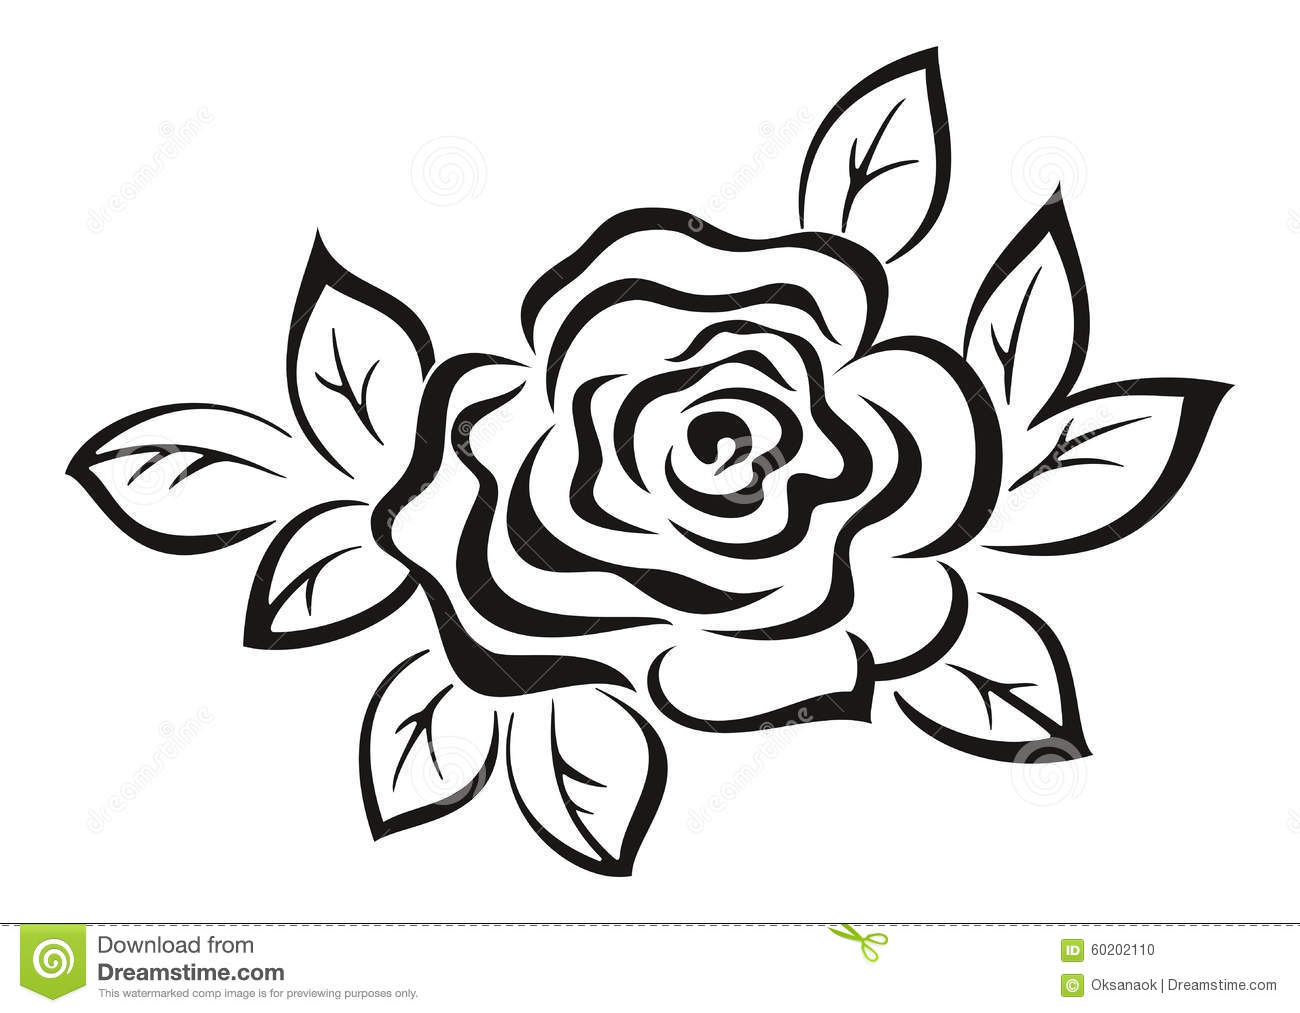 Rose Flower Black Pictogram